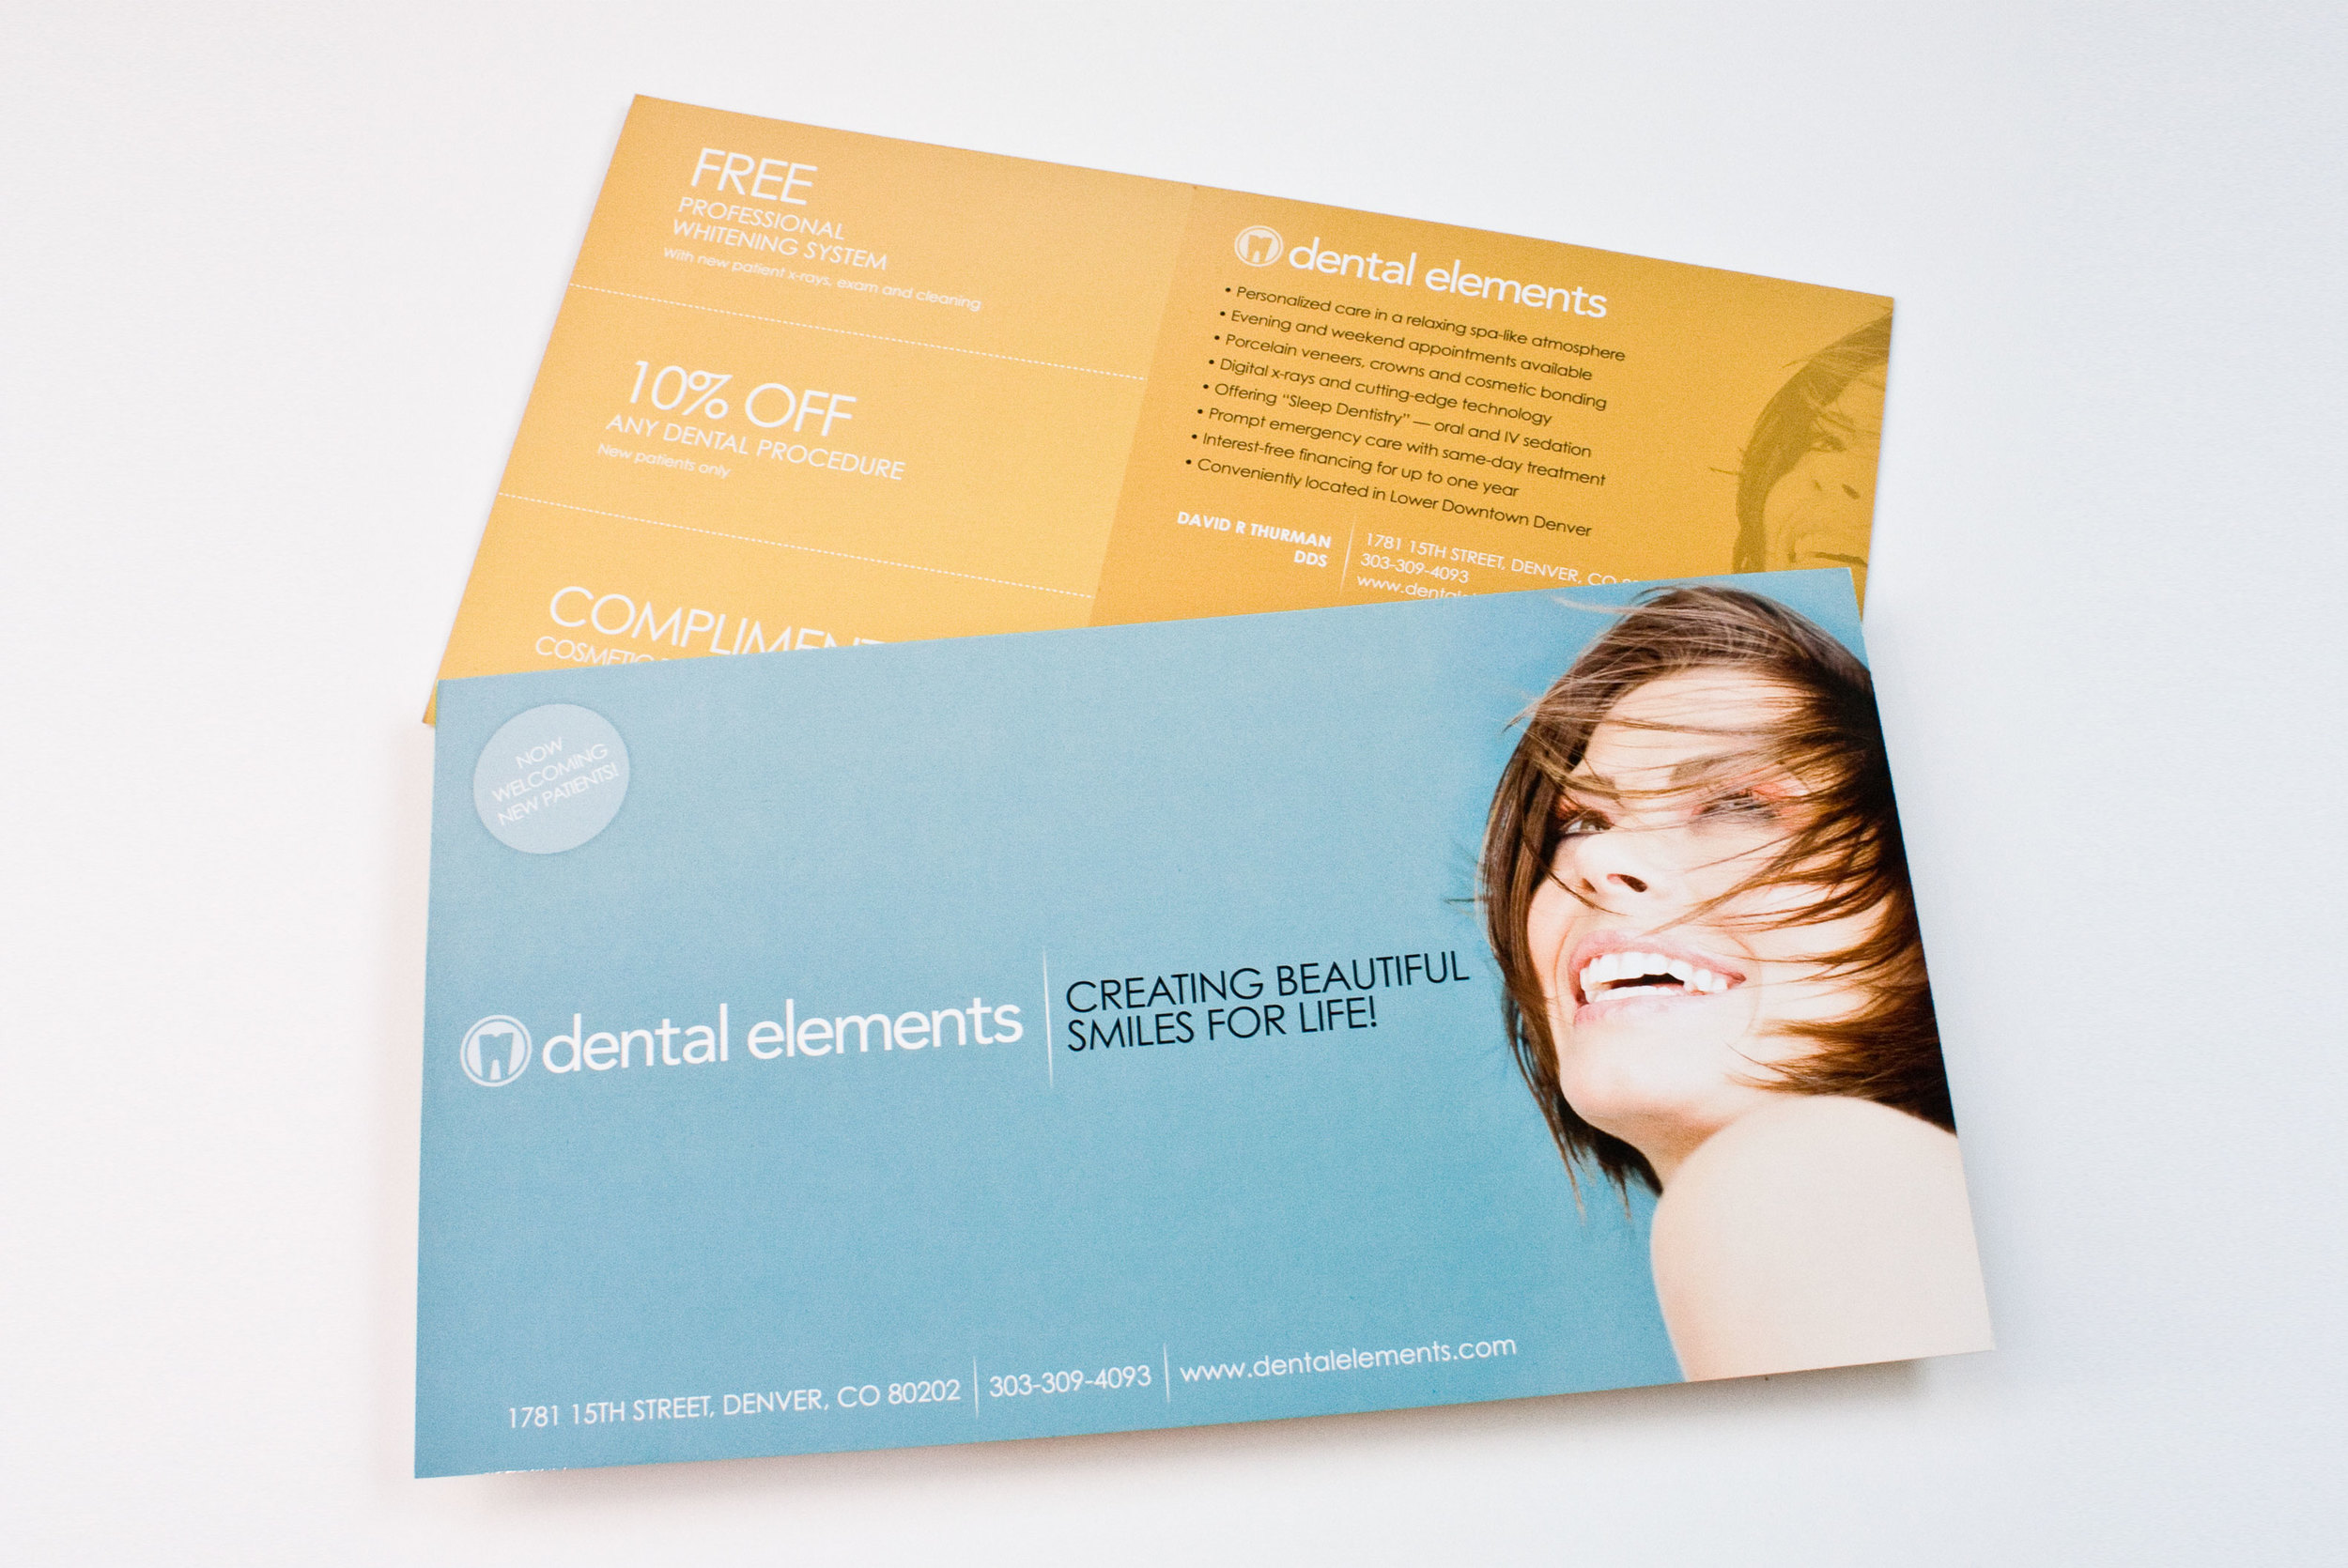 dental.elements.5.jpg